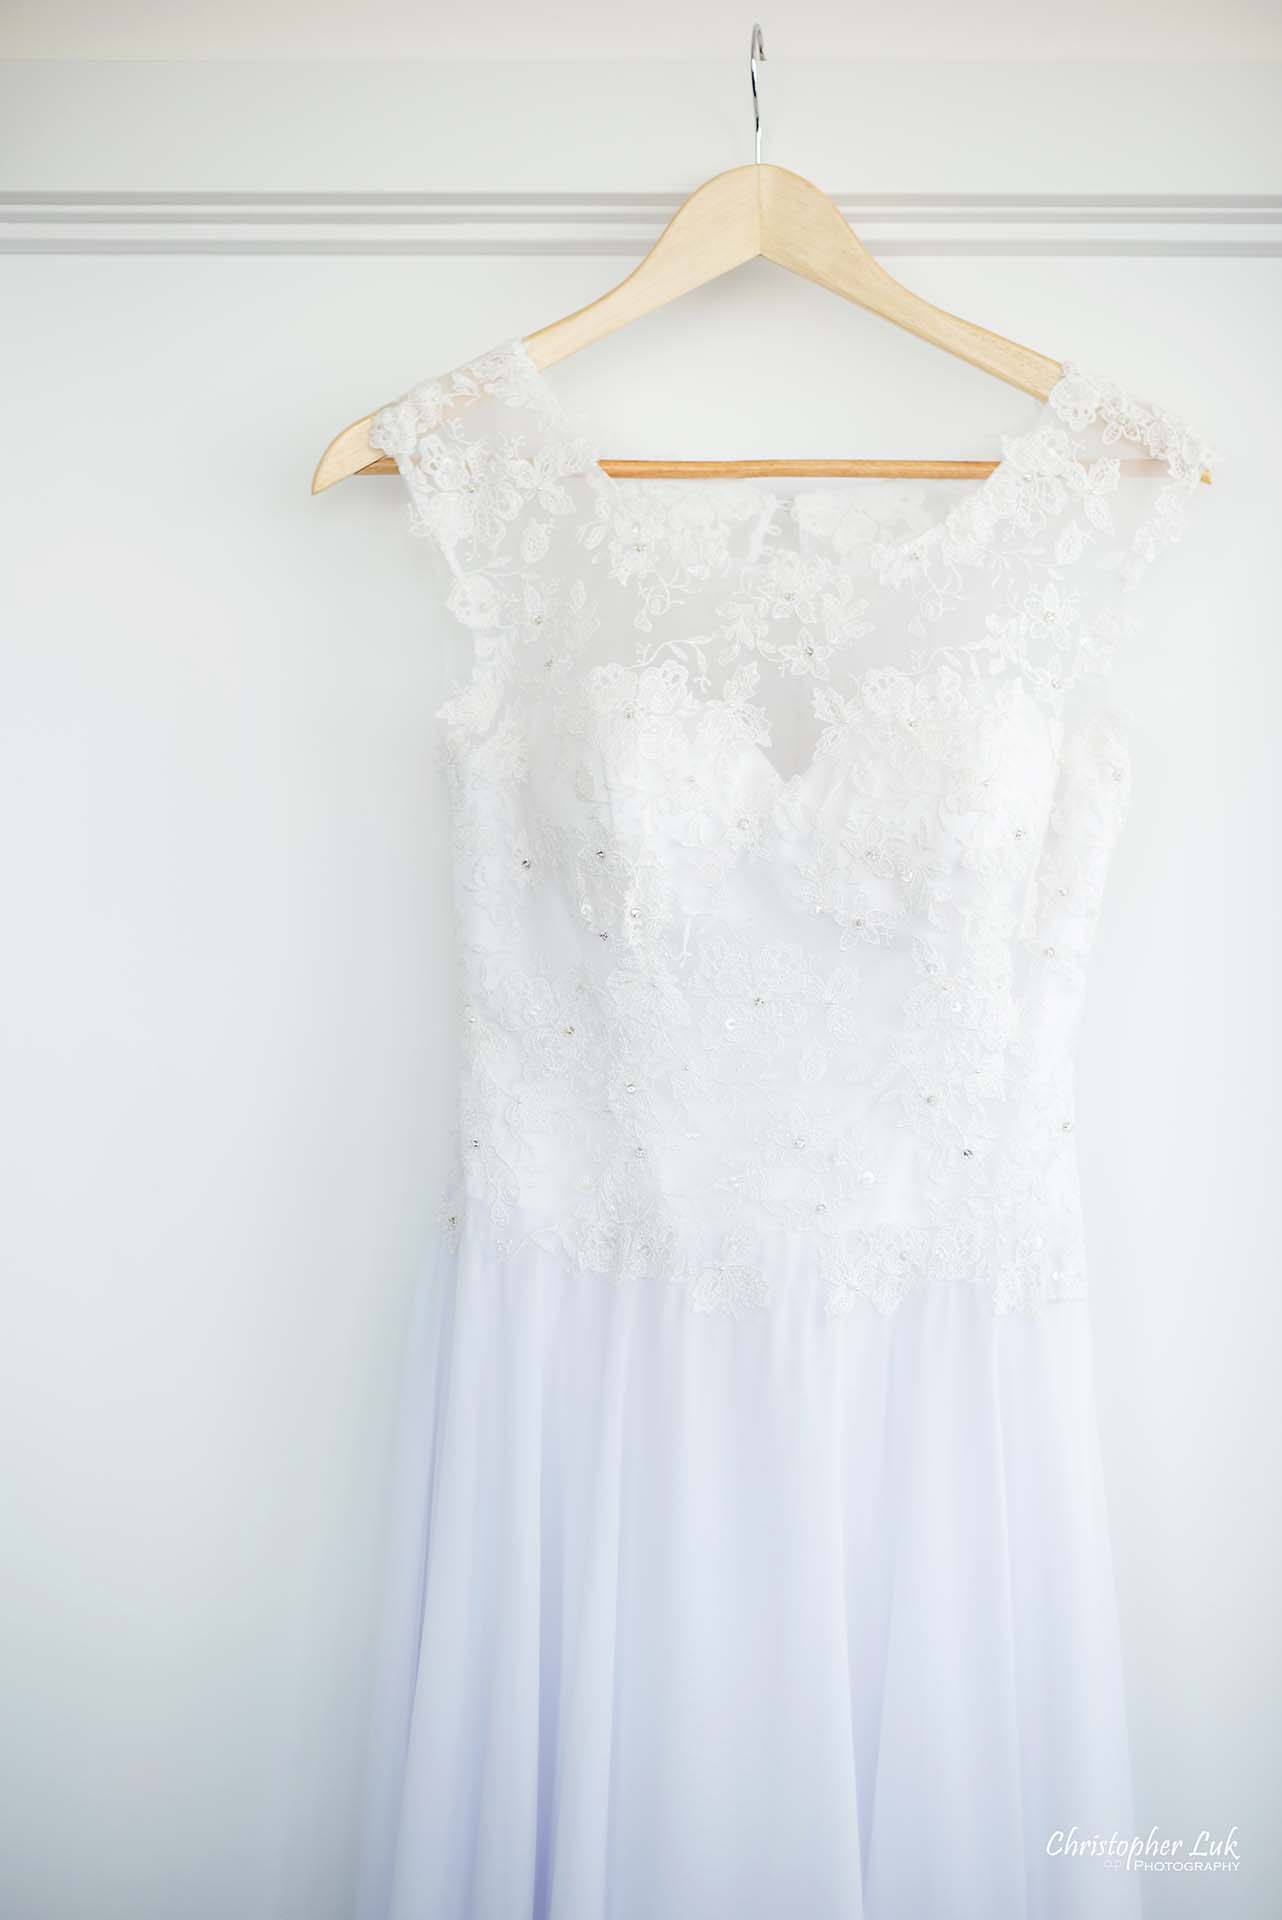 Christopher Luk Toronto Wedding Photographer - White Wedding Dress Hanging Detail Lace See Through